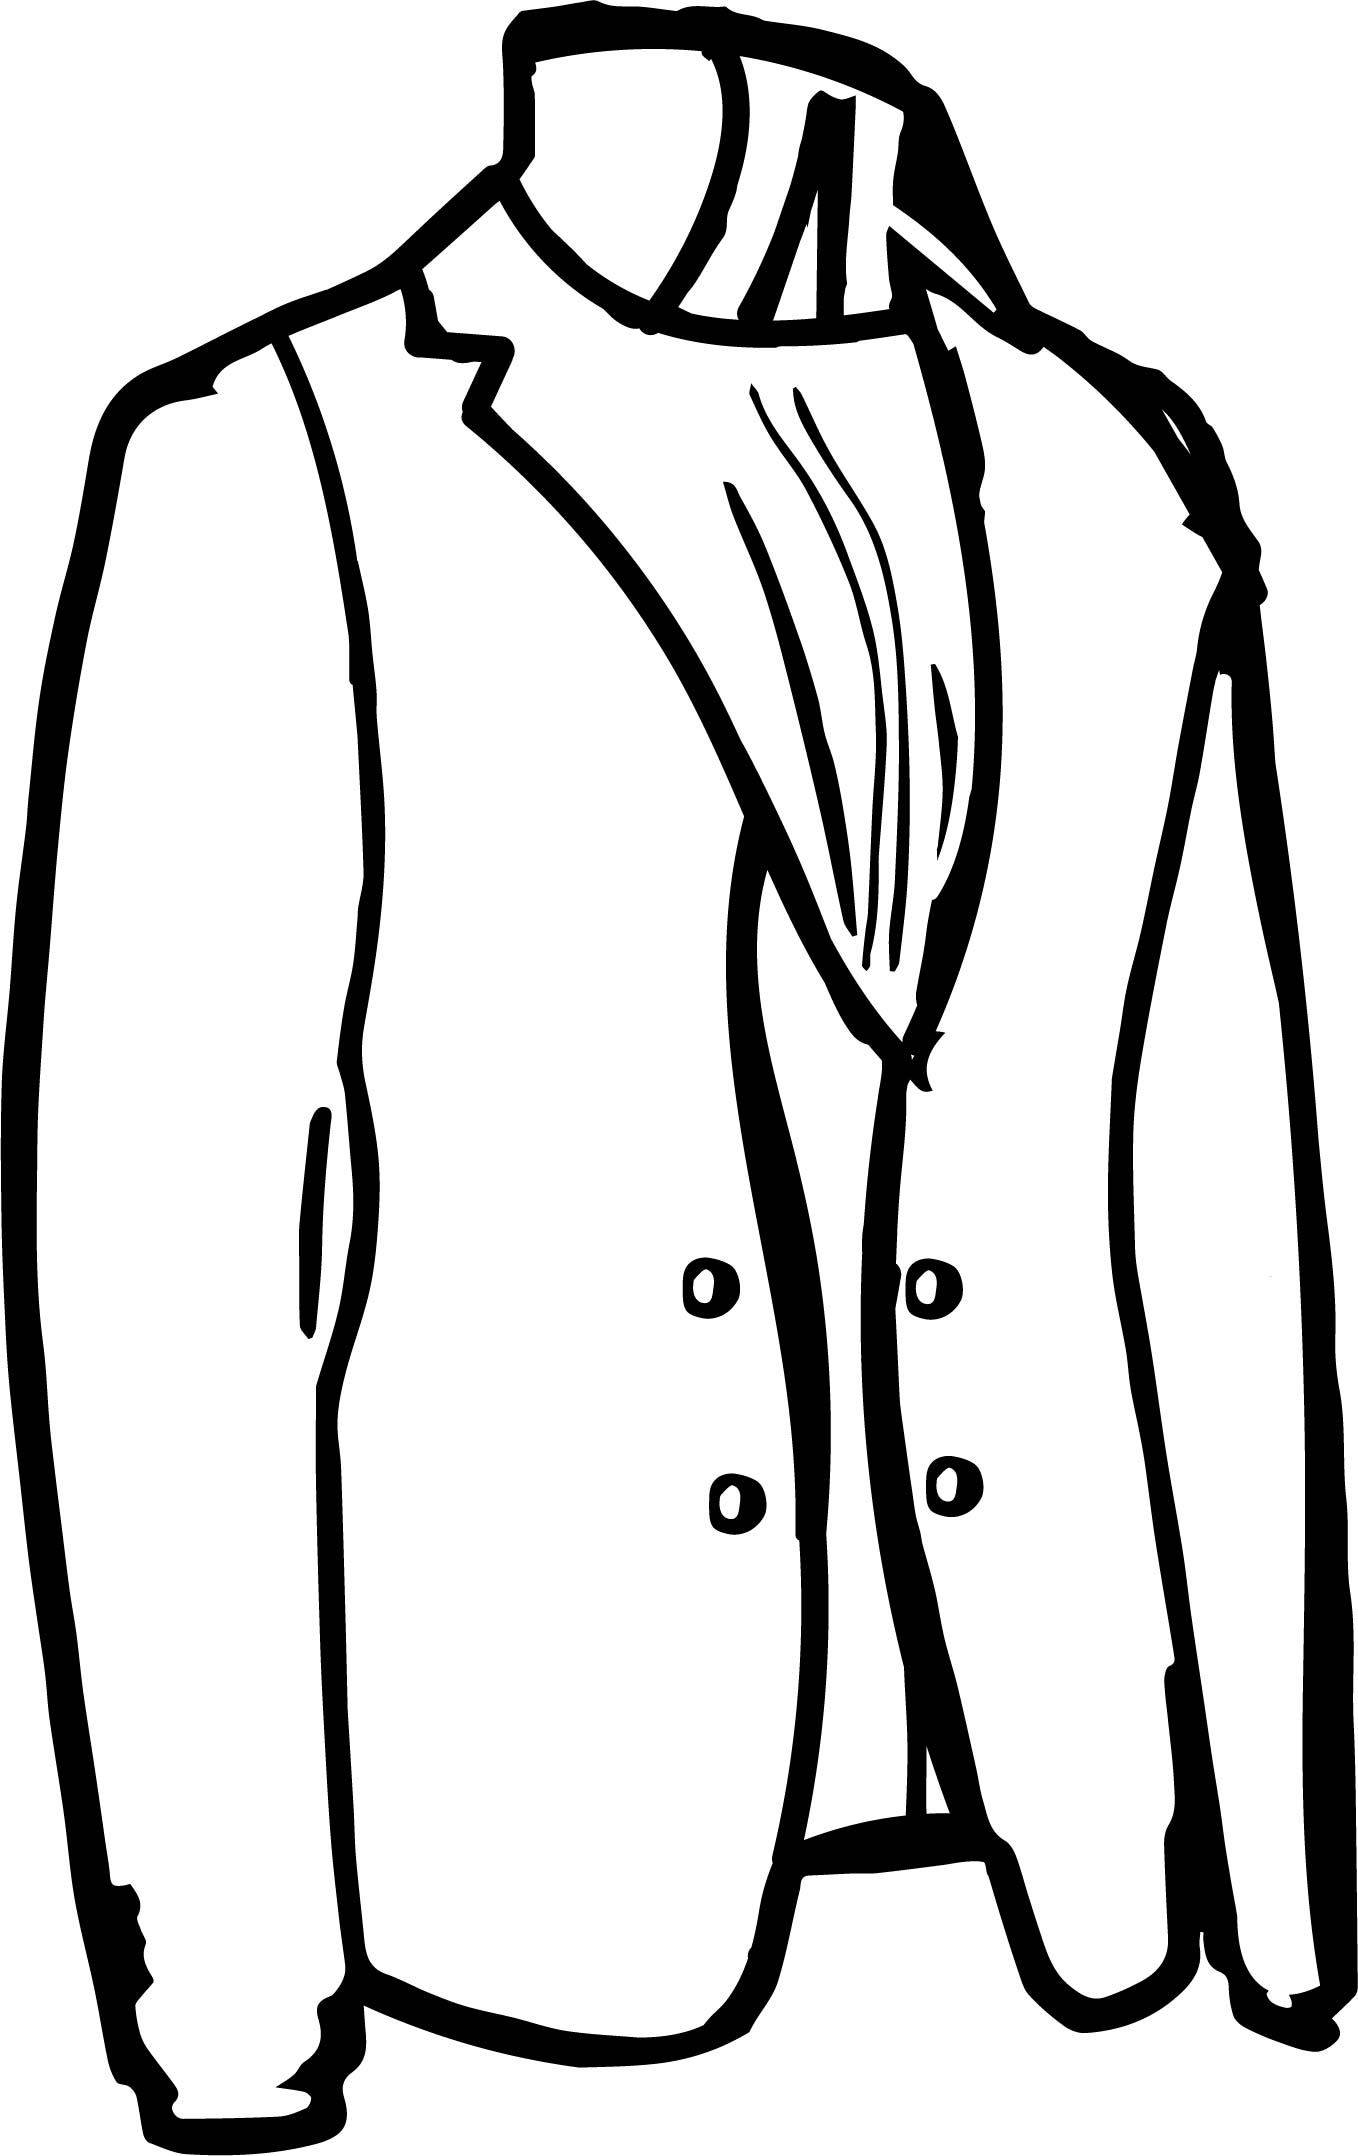 Tailor Jacket Coloring Page Wecoloringpage